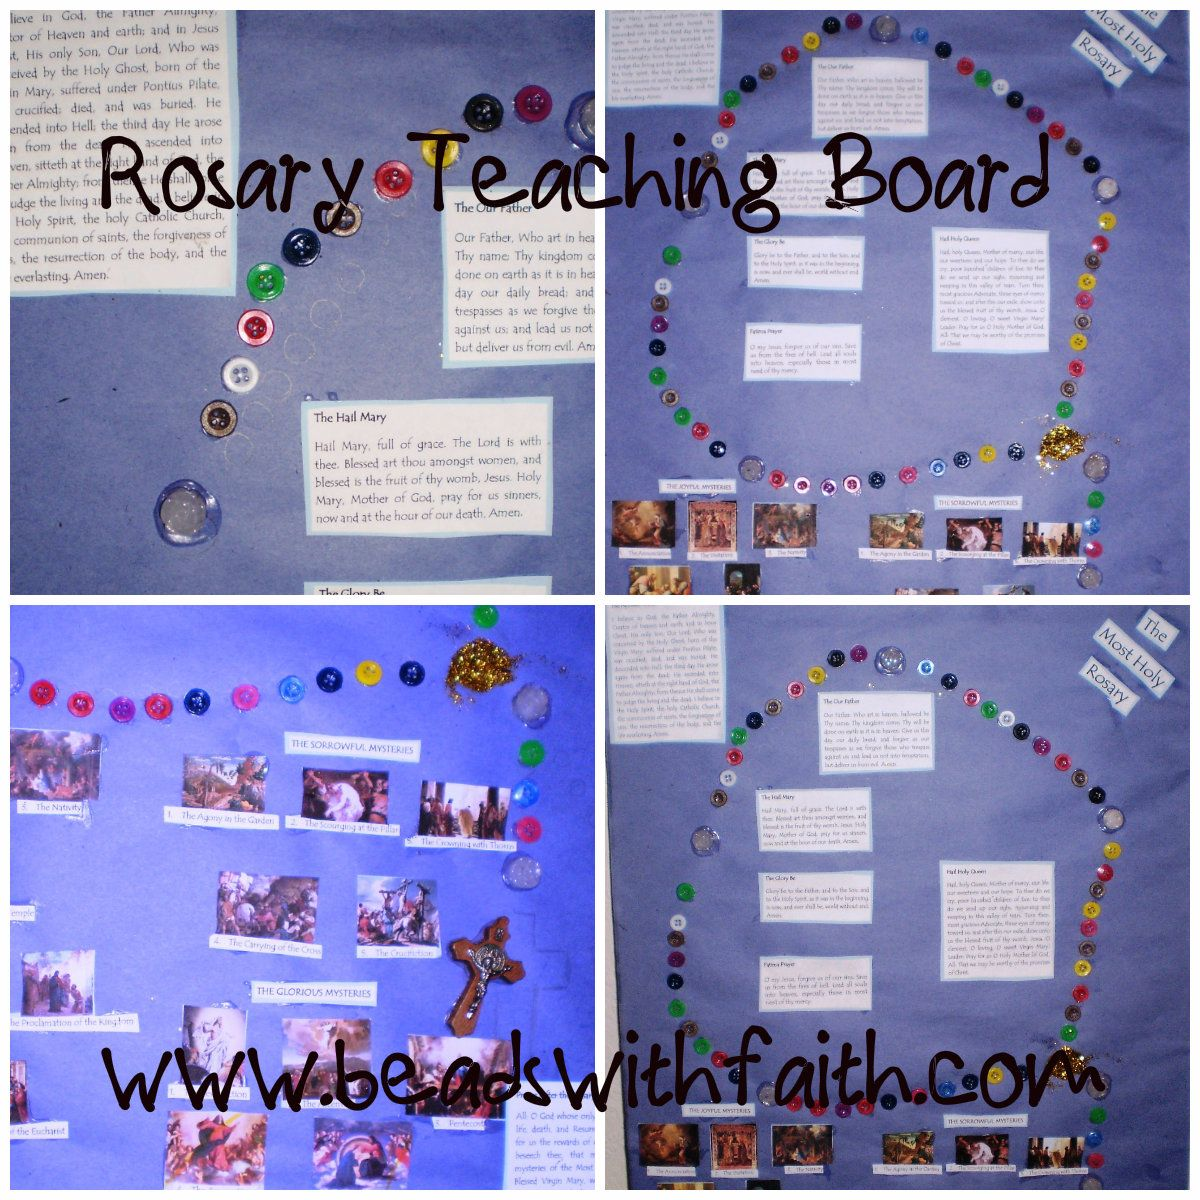 Rosary Teaching Board Beads with Faith